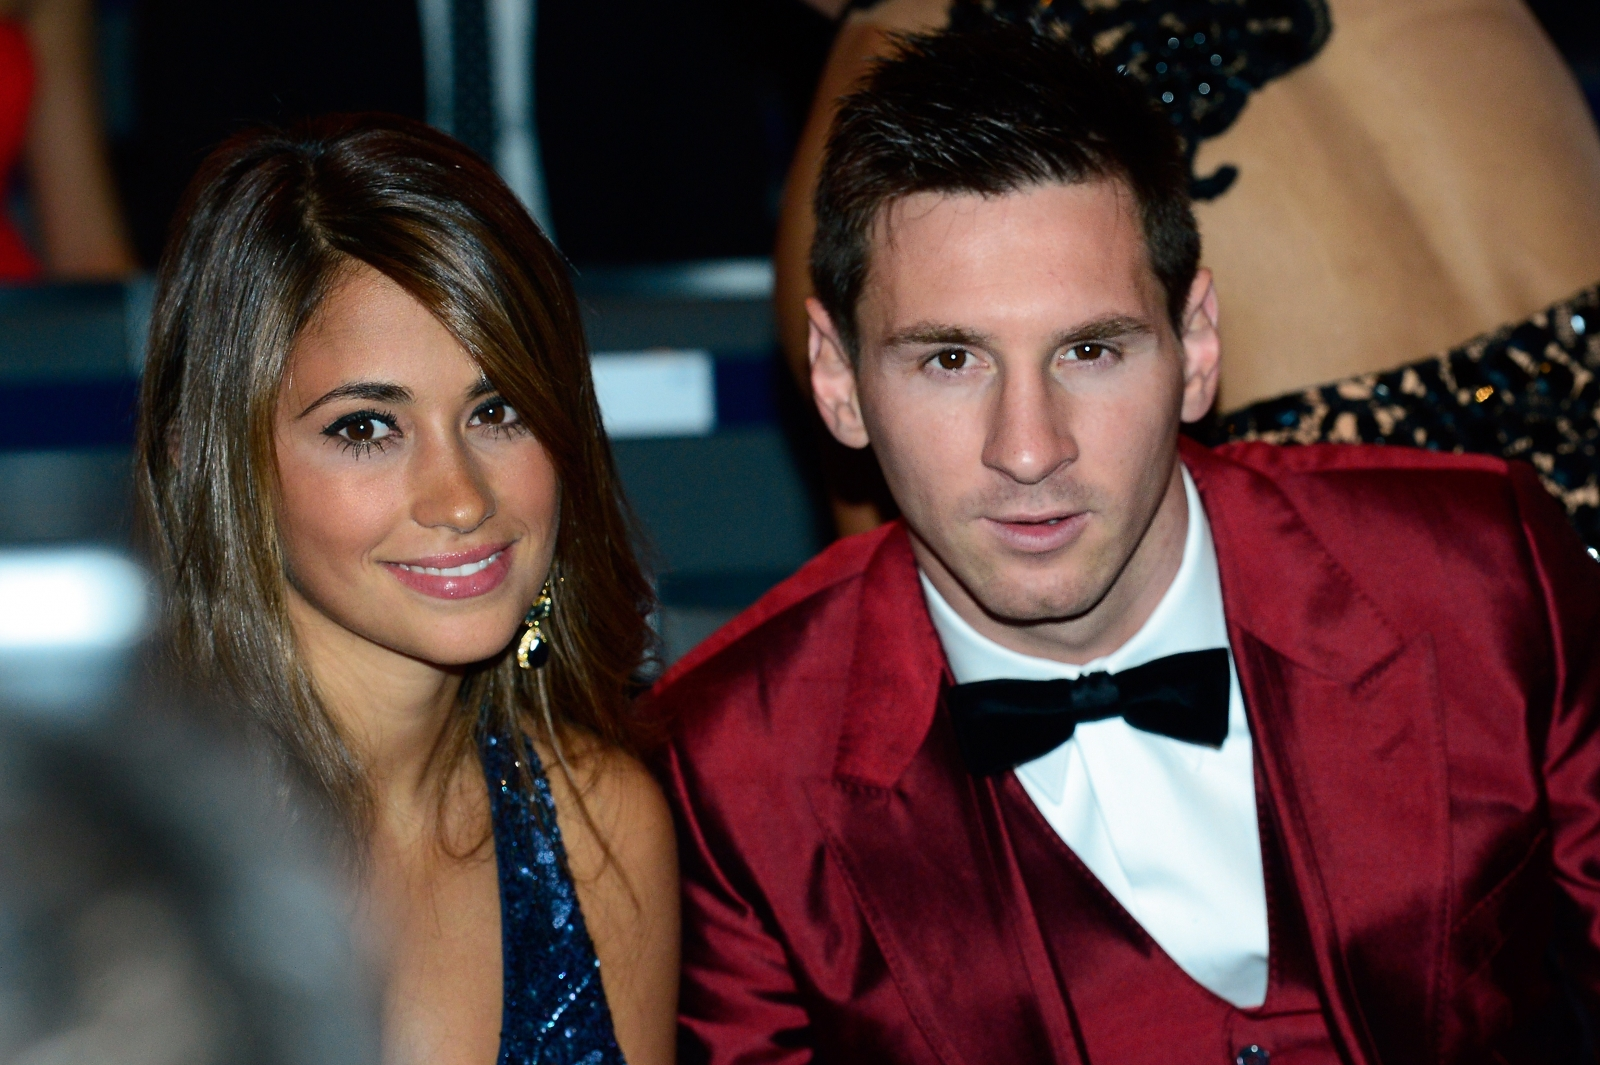 Argentine soccer player Lionel Messi to marry Antonella Roccuzzo